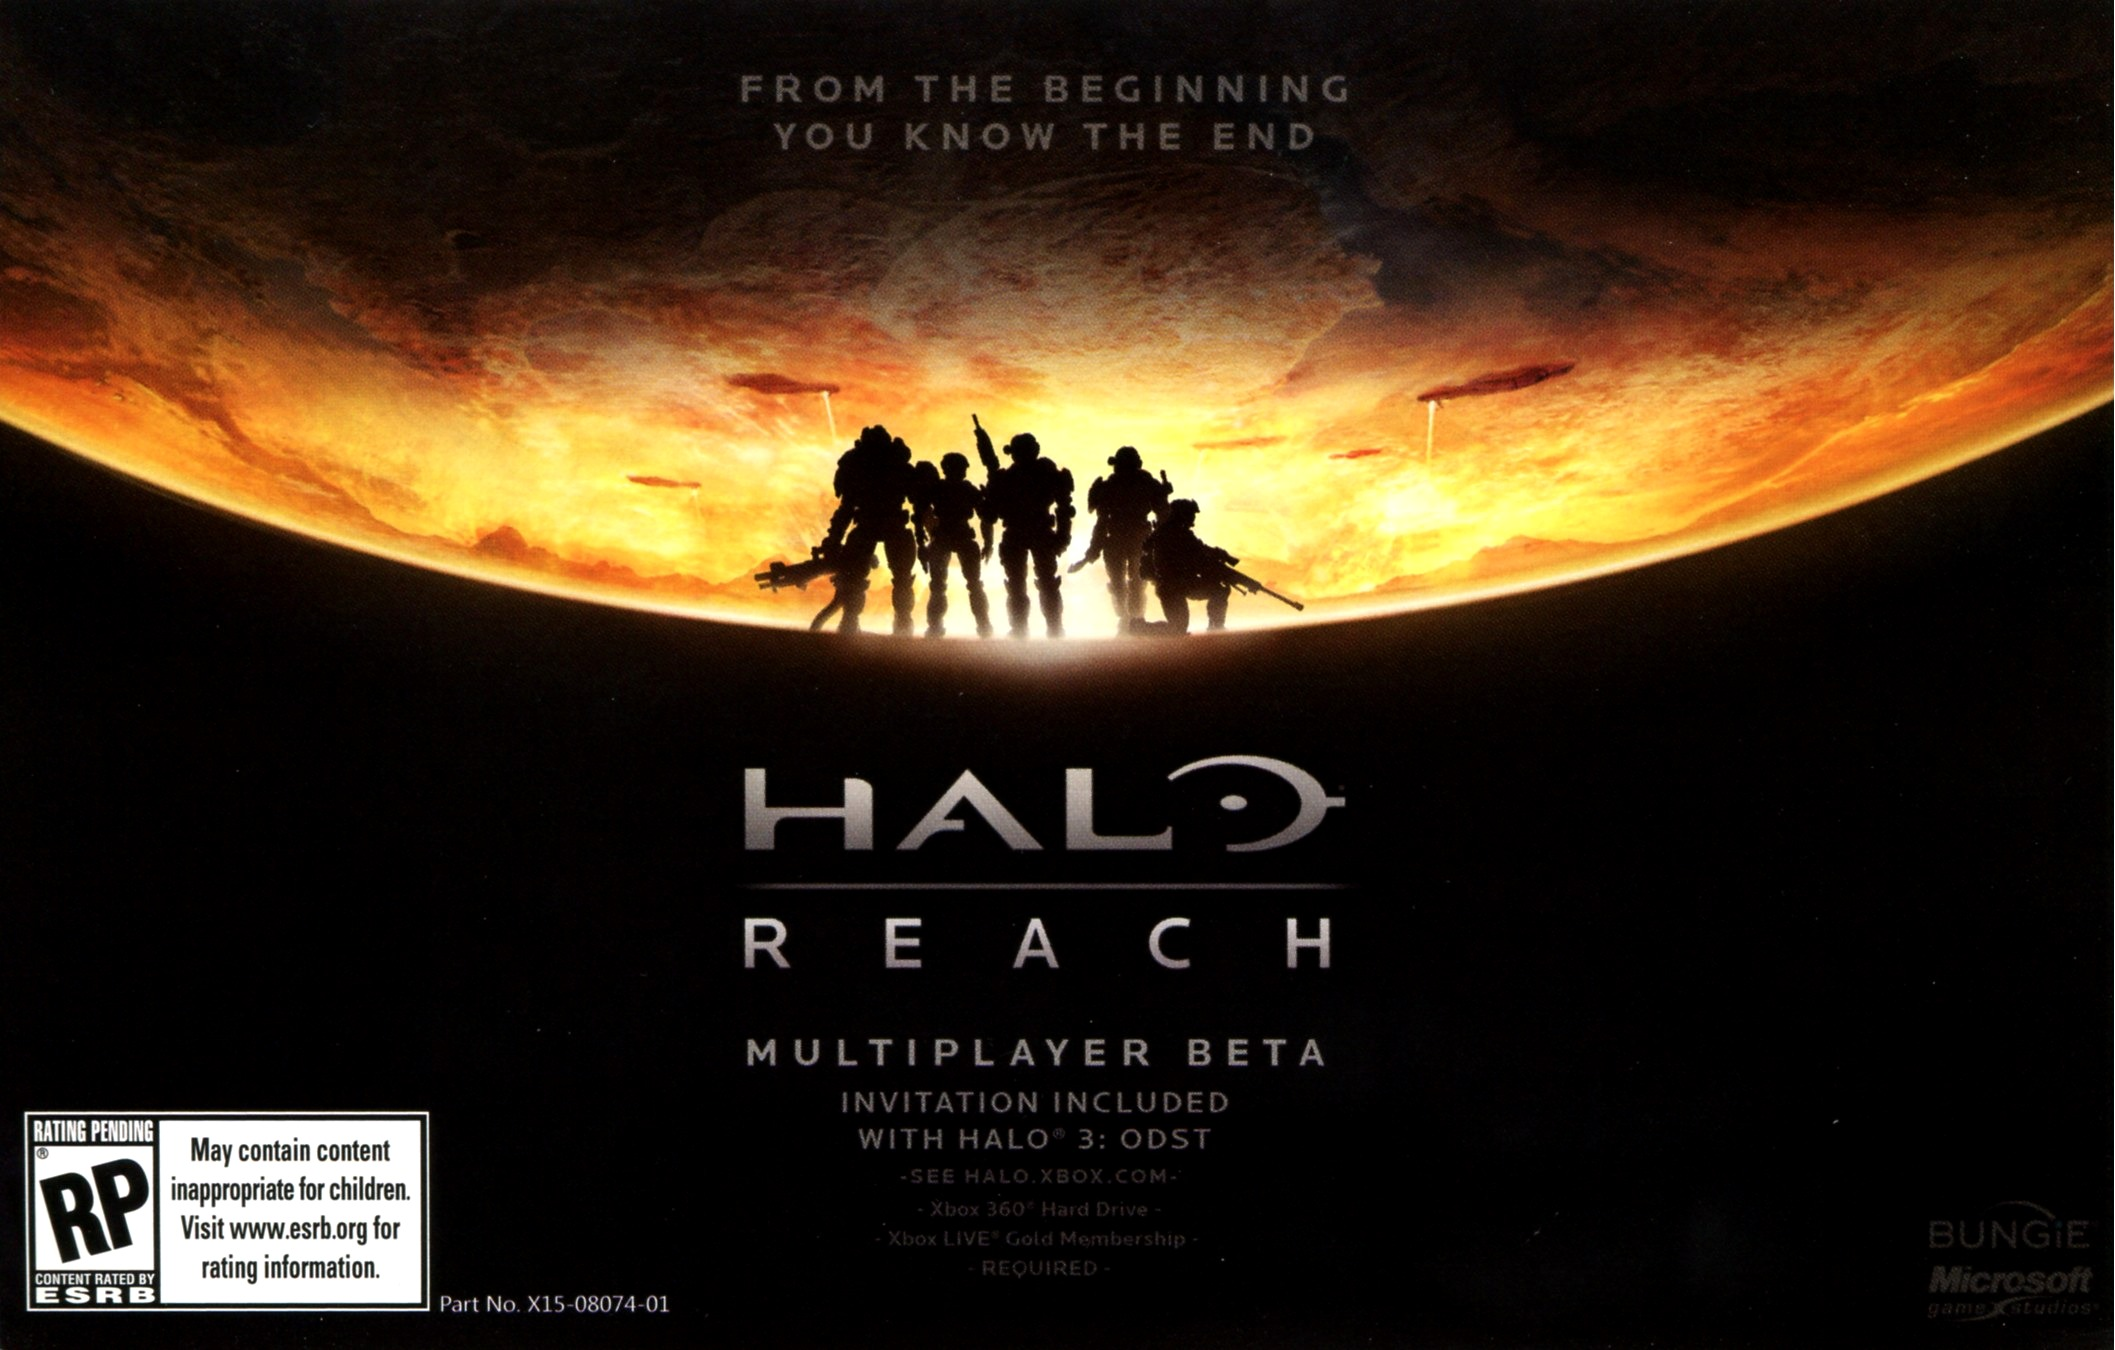 Halo: Reach (2010) promotional art - MobyGames